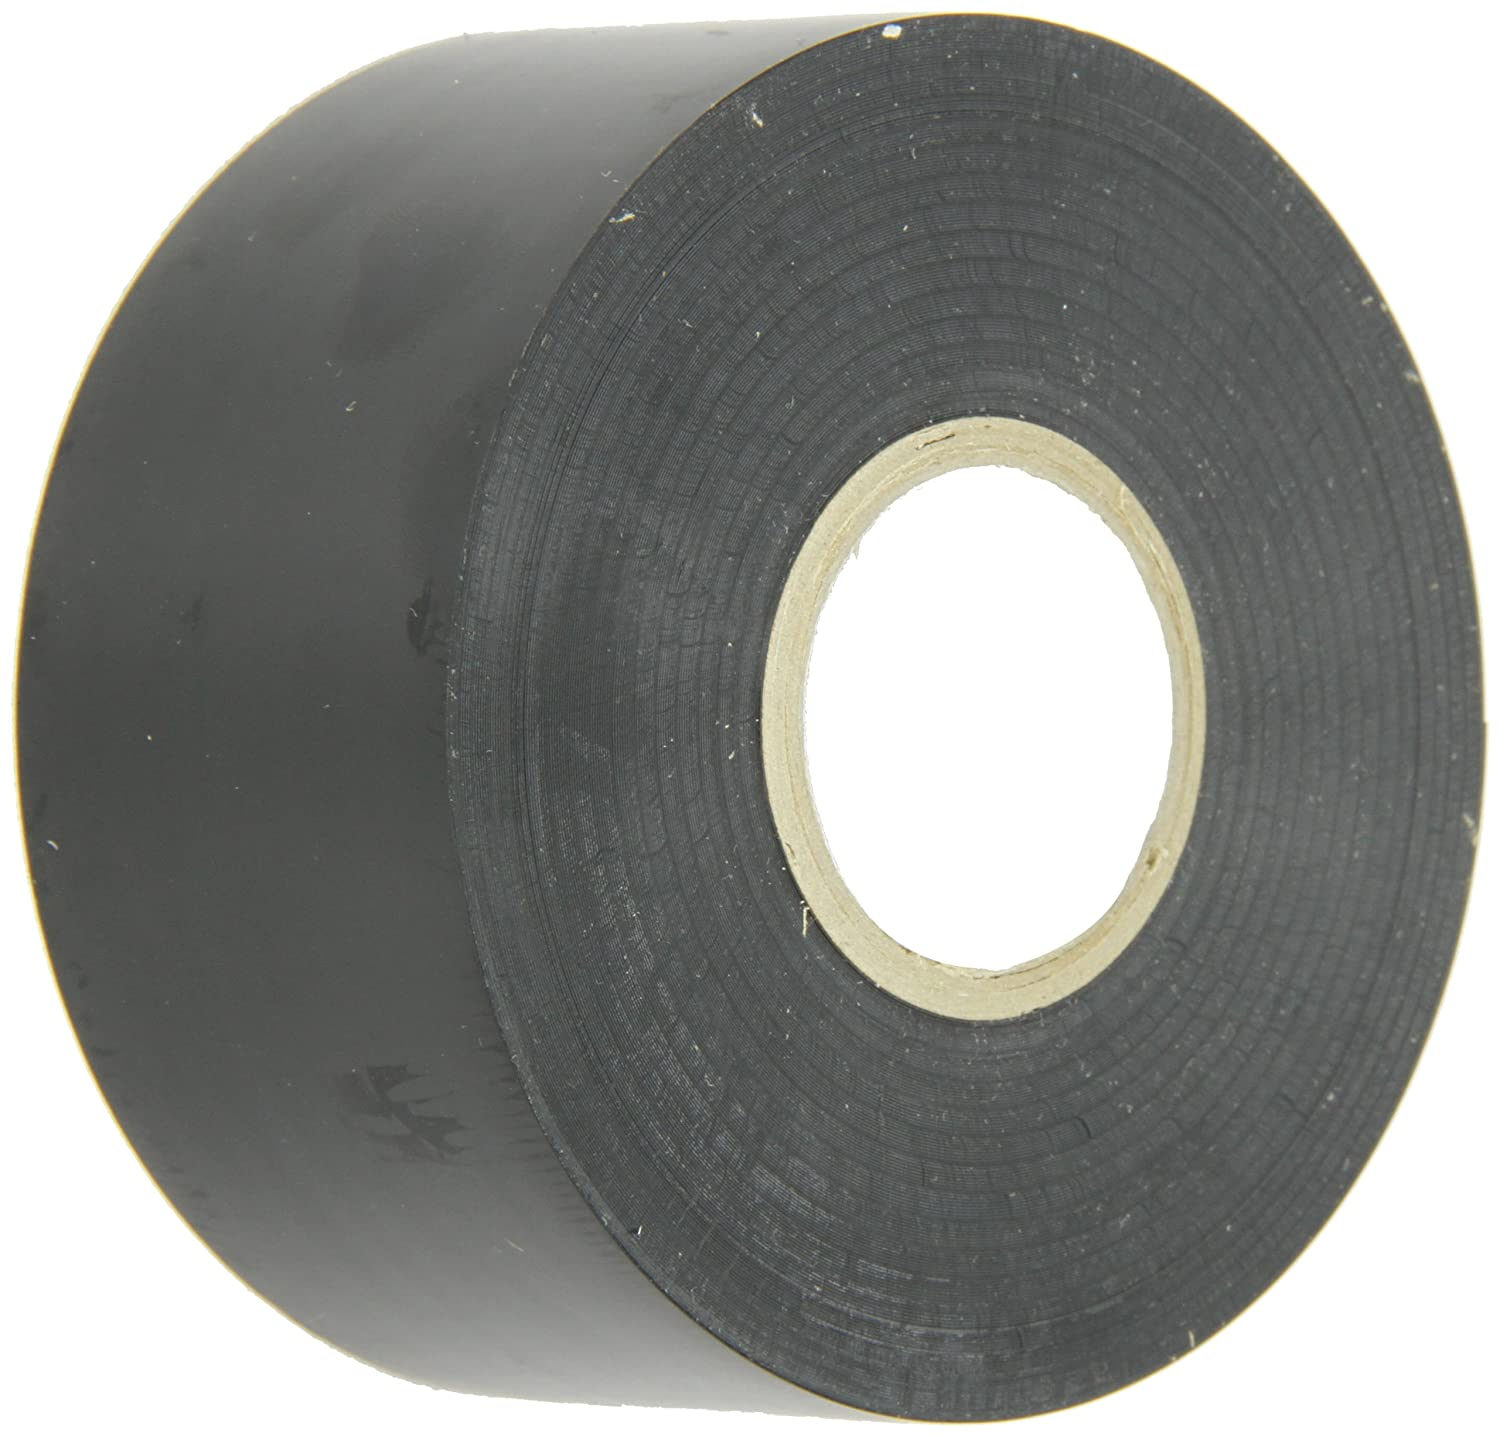 "NSi Industries, LLC Easy-Wrap All Weather Corrosion Protection PVC Tape, 2"" Width, 100' Length, 0.010"" Thick, Black - EWPP102100"